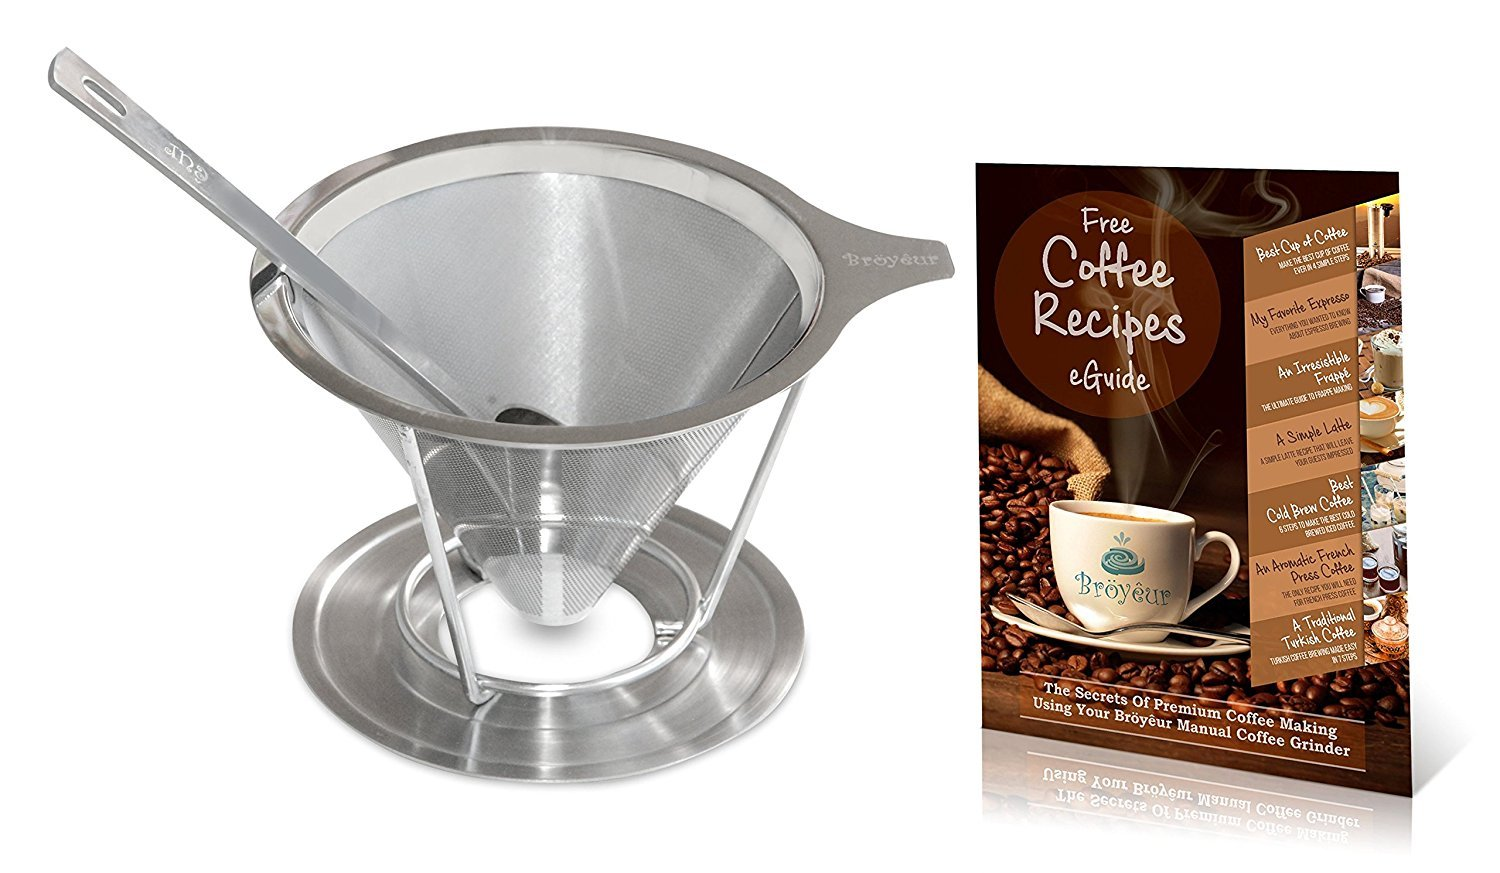 Bröyêur Paperless and Reusable Coffee Filter / Dripper Maker with Stand, Coffee Scoop and Recipes eBook